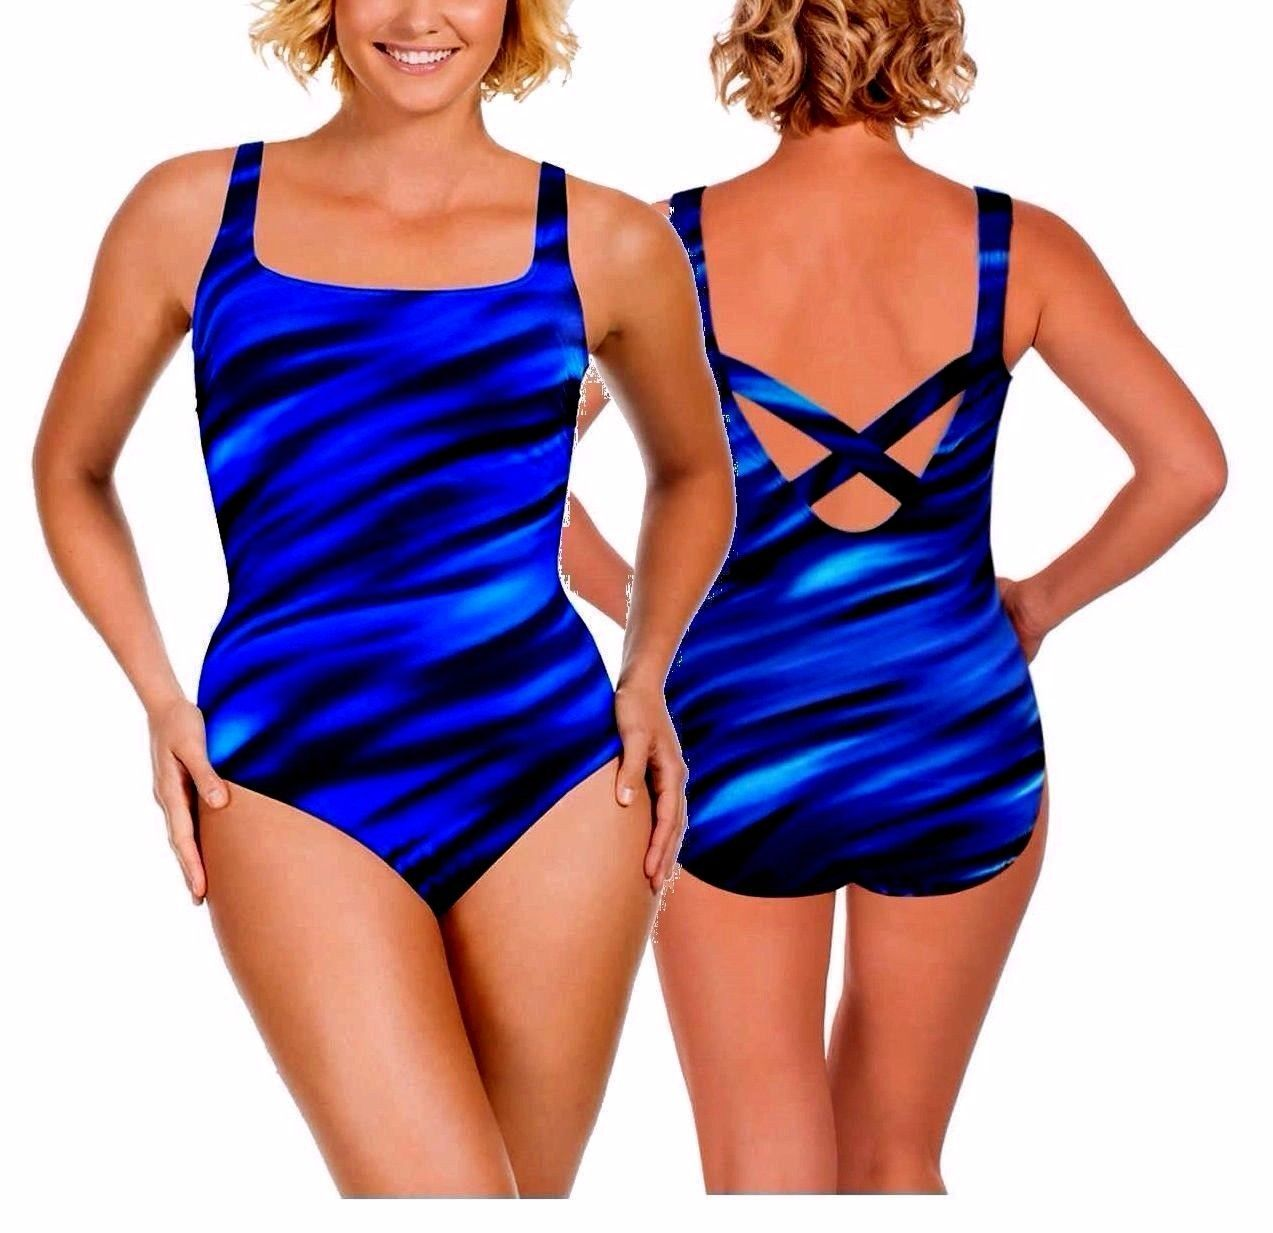 Primary image for Miraclesuit Kirkland 1 Piece Swimsuit look 10 lbs Slimmer Navy Blue Sz 8 to 16